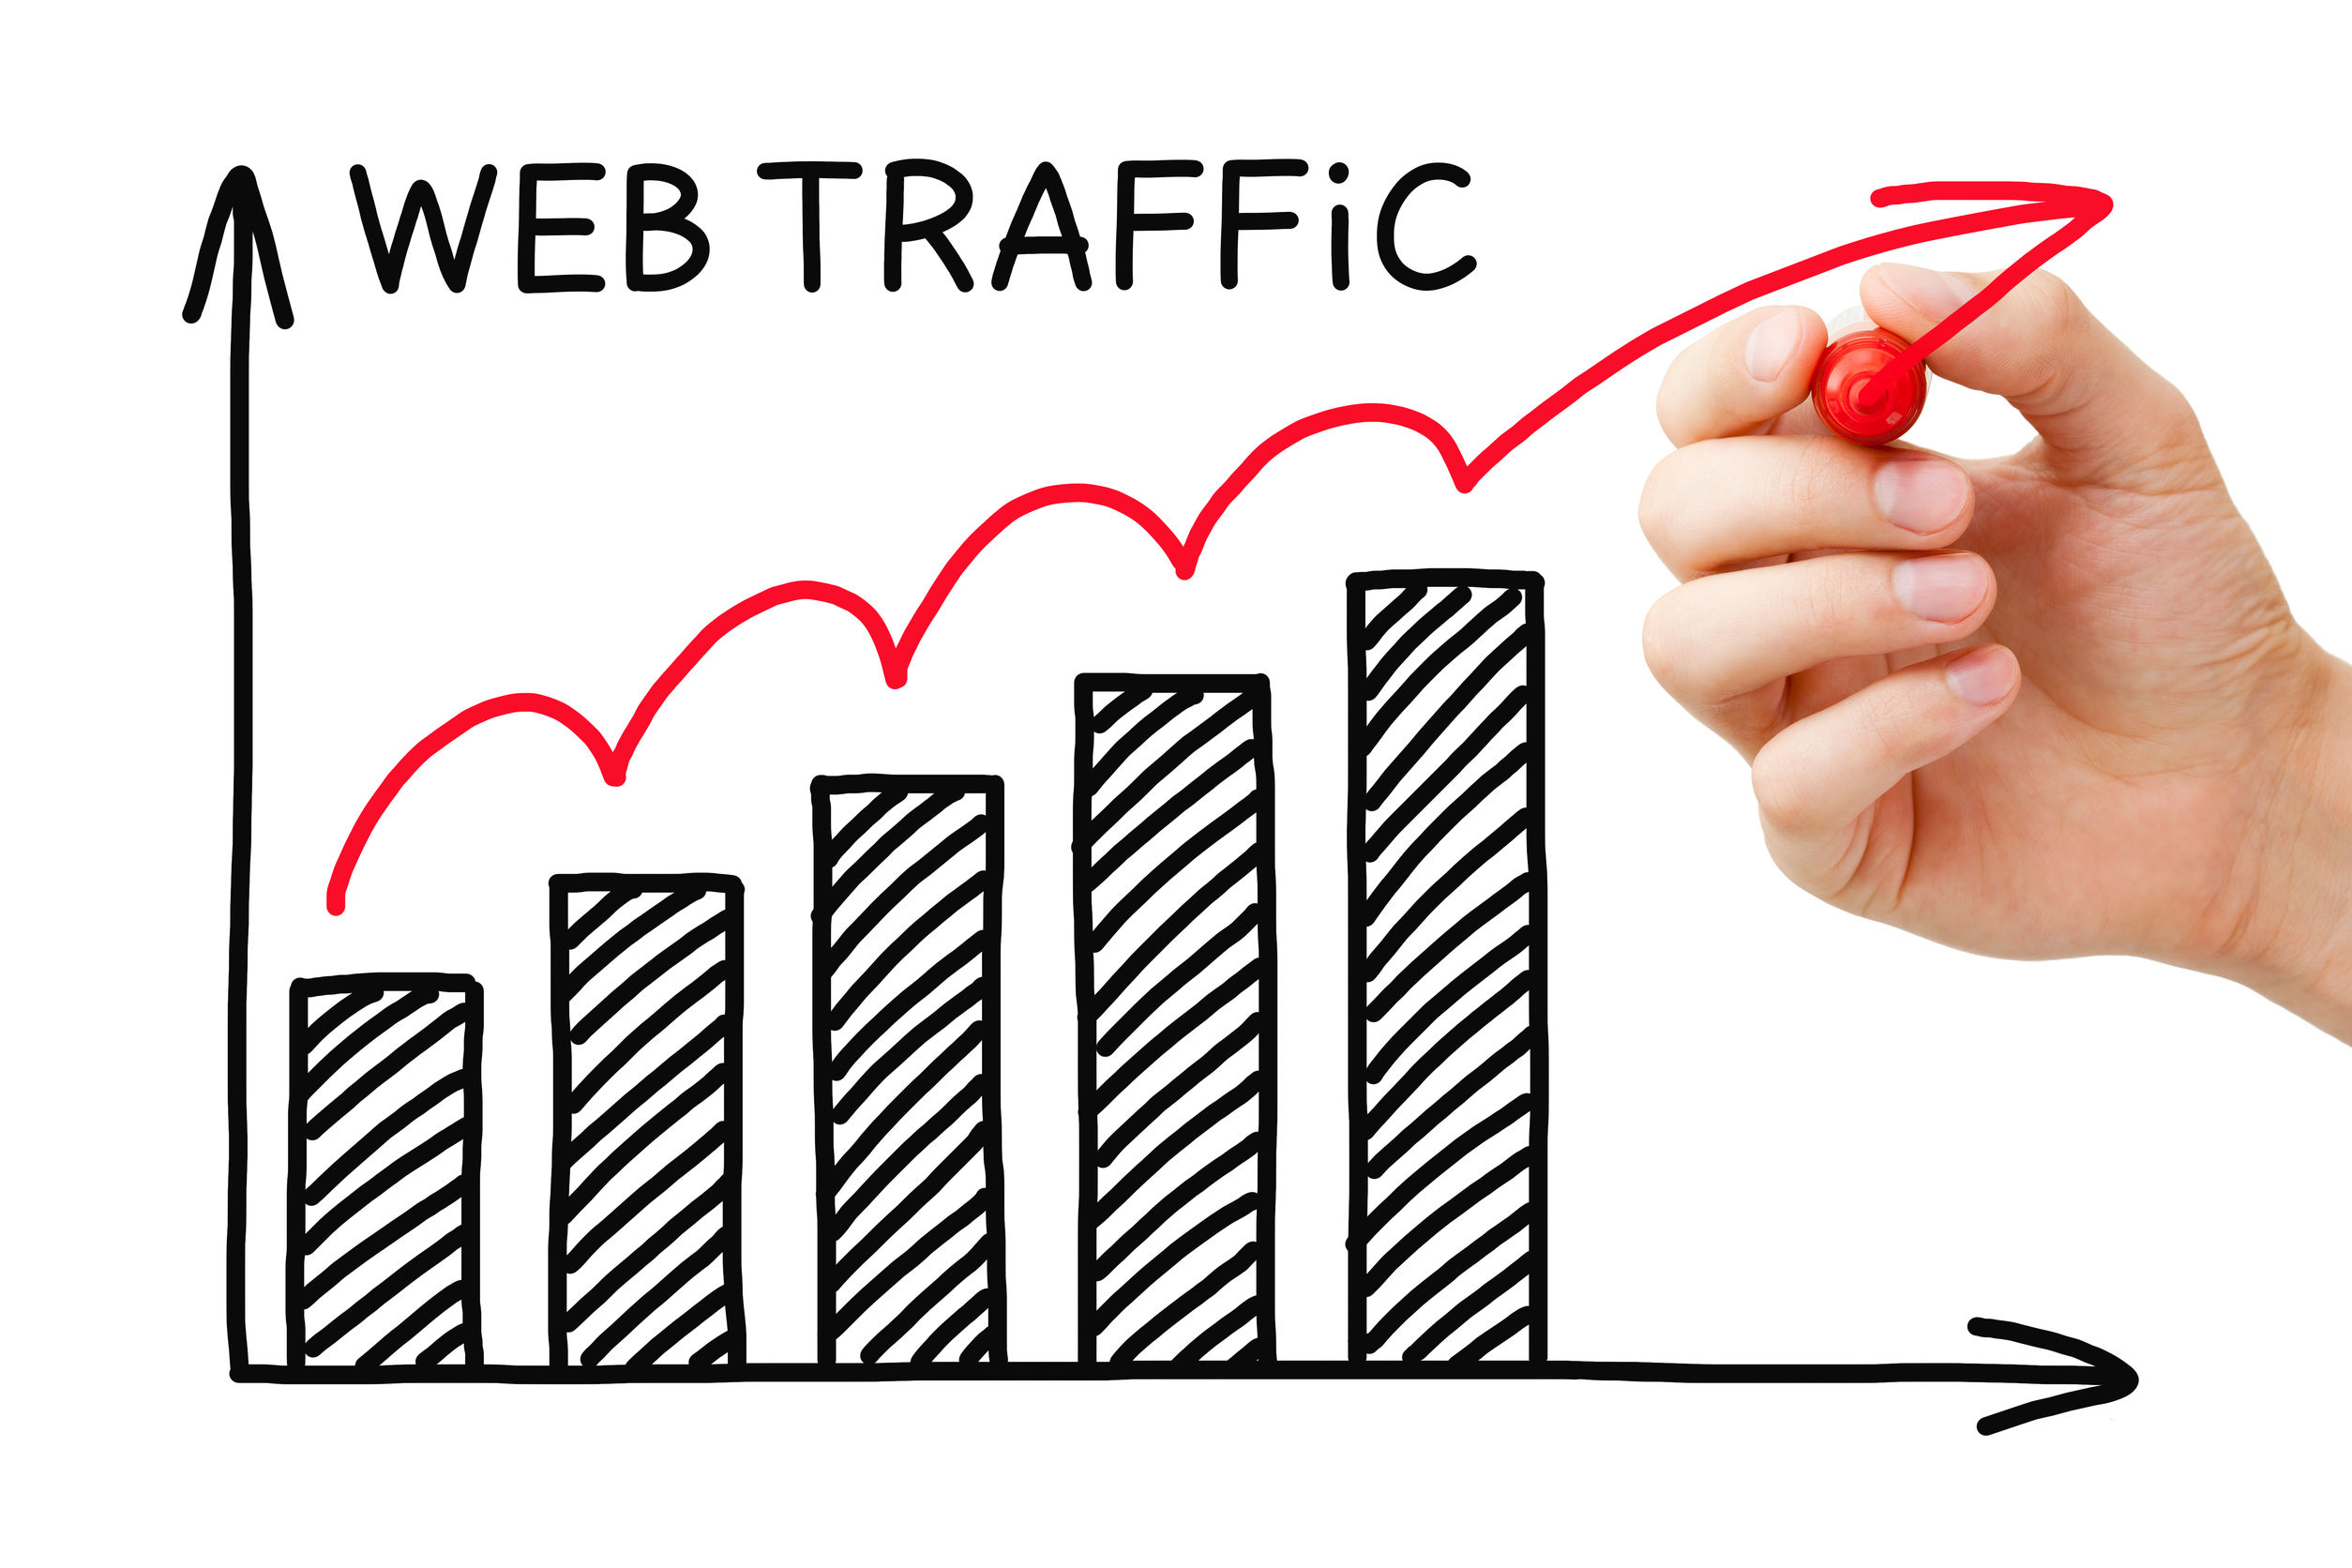 increase-website-traffic-sonority-group.jpeg